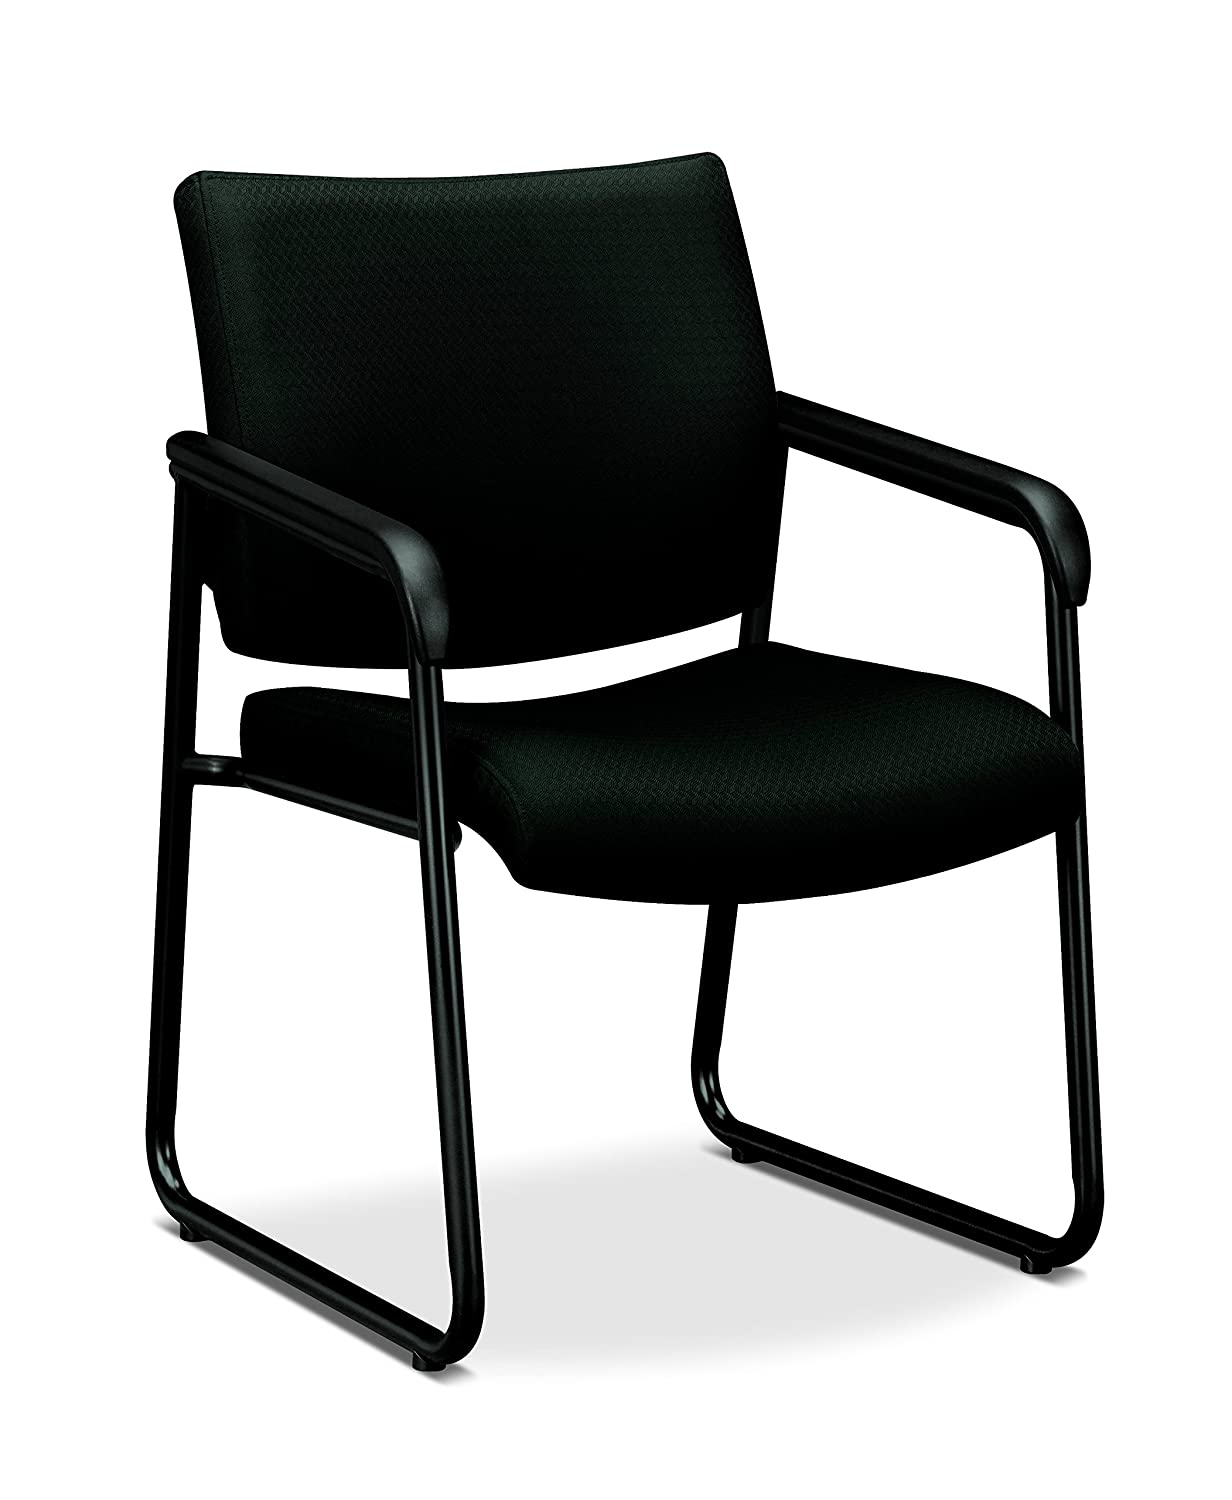 Basyx by Hon Guest Chair, Black The HON Company HVL443.VC10